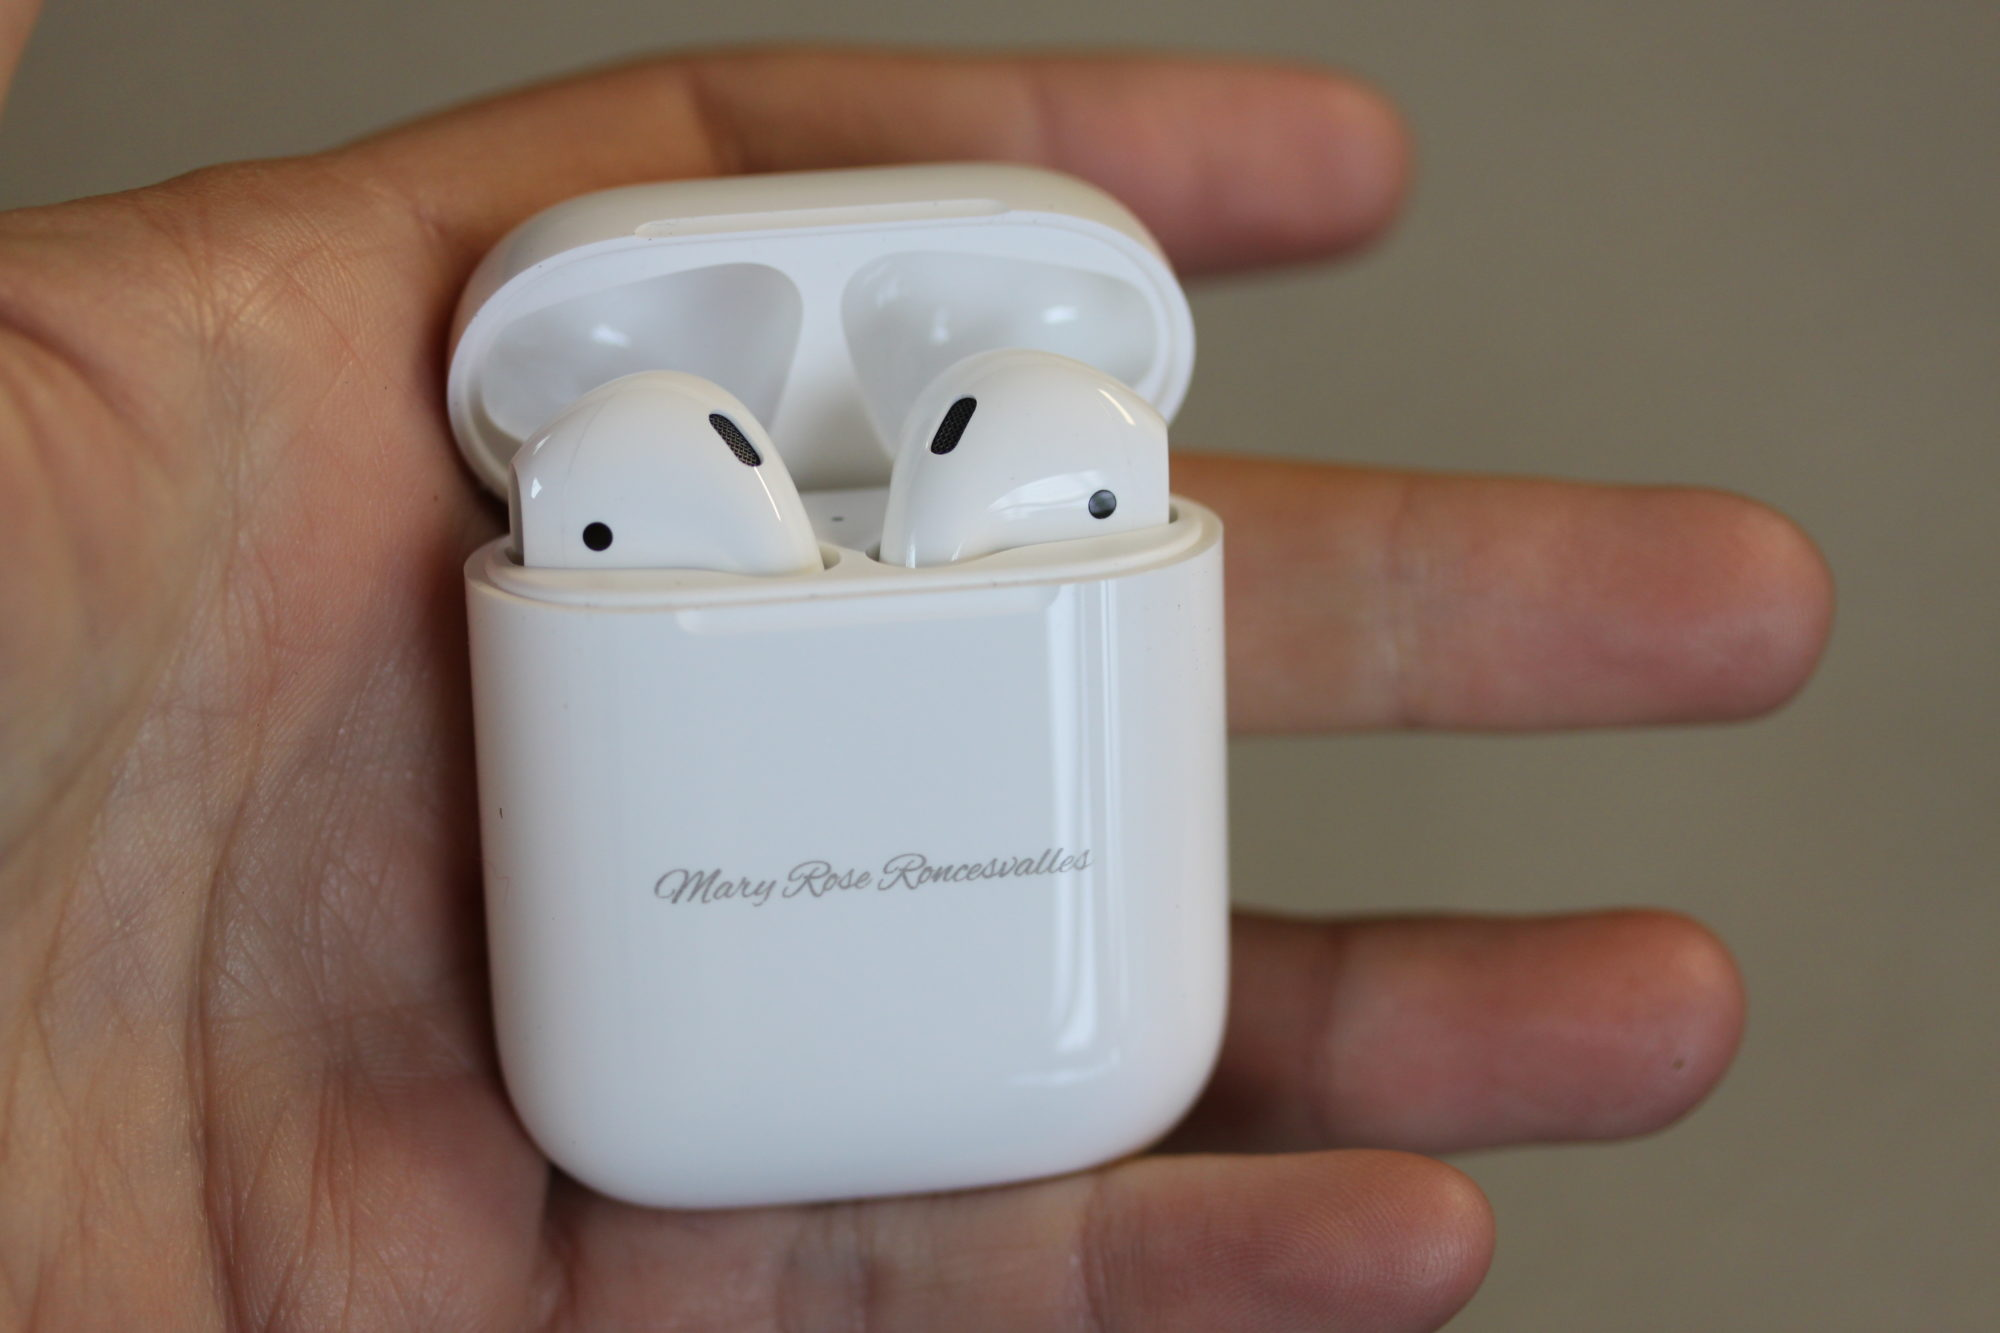 Laser Engraved AirPods